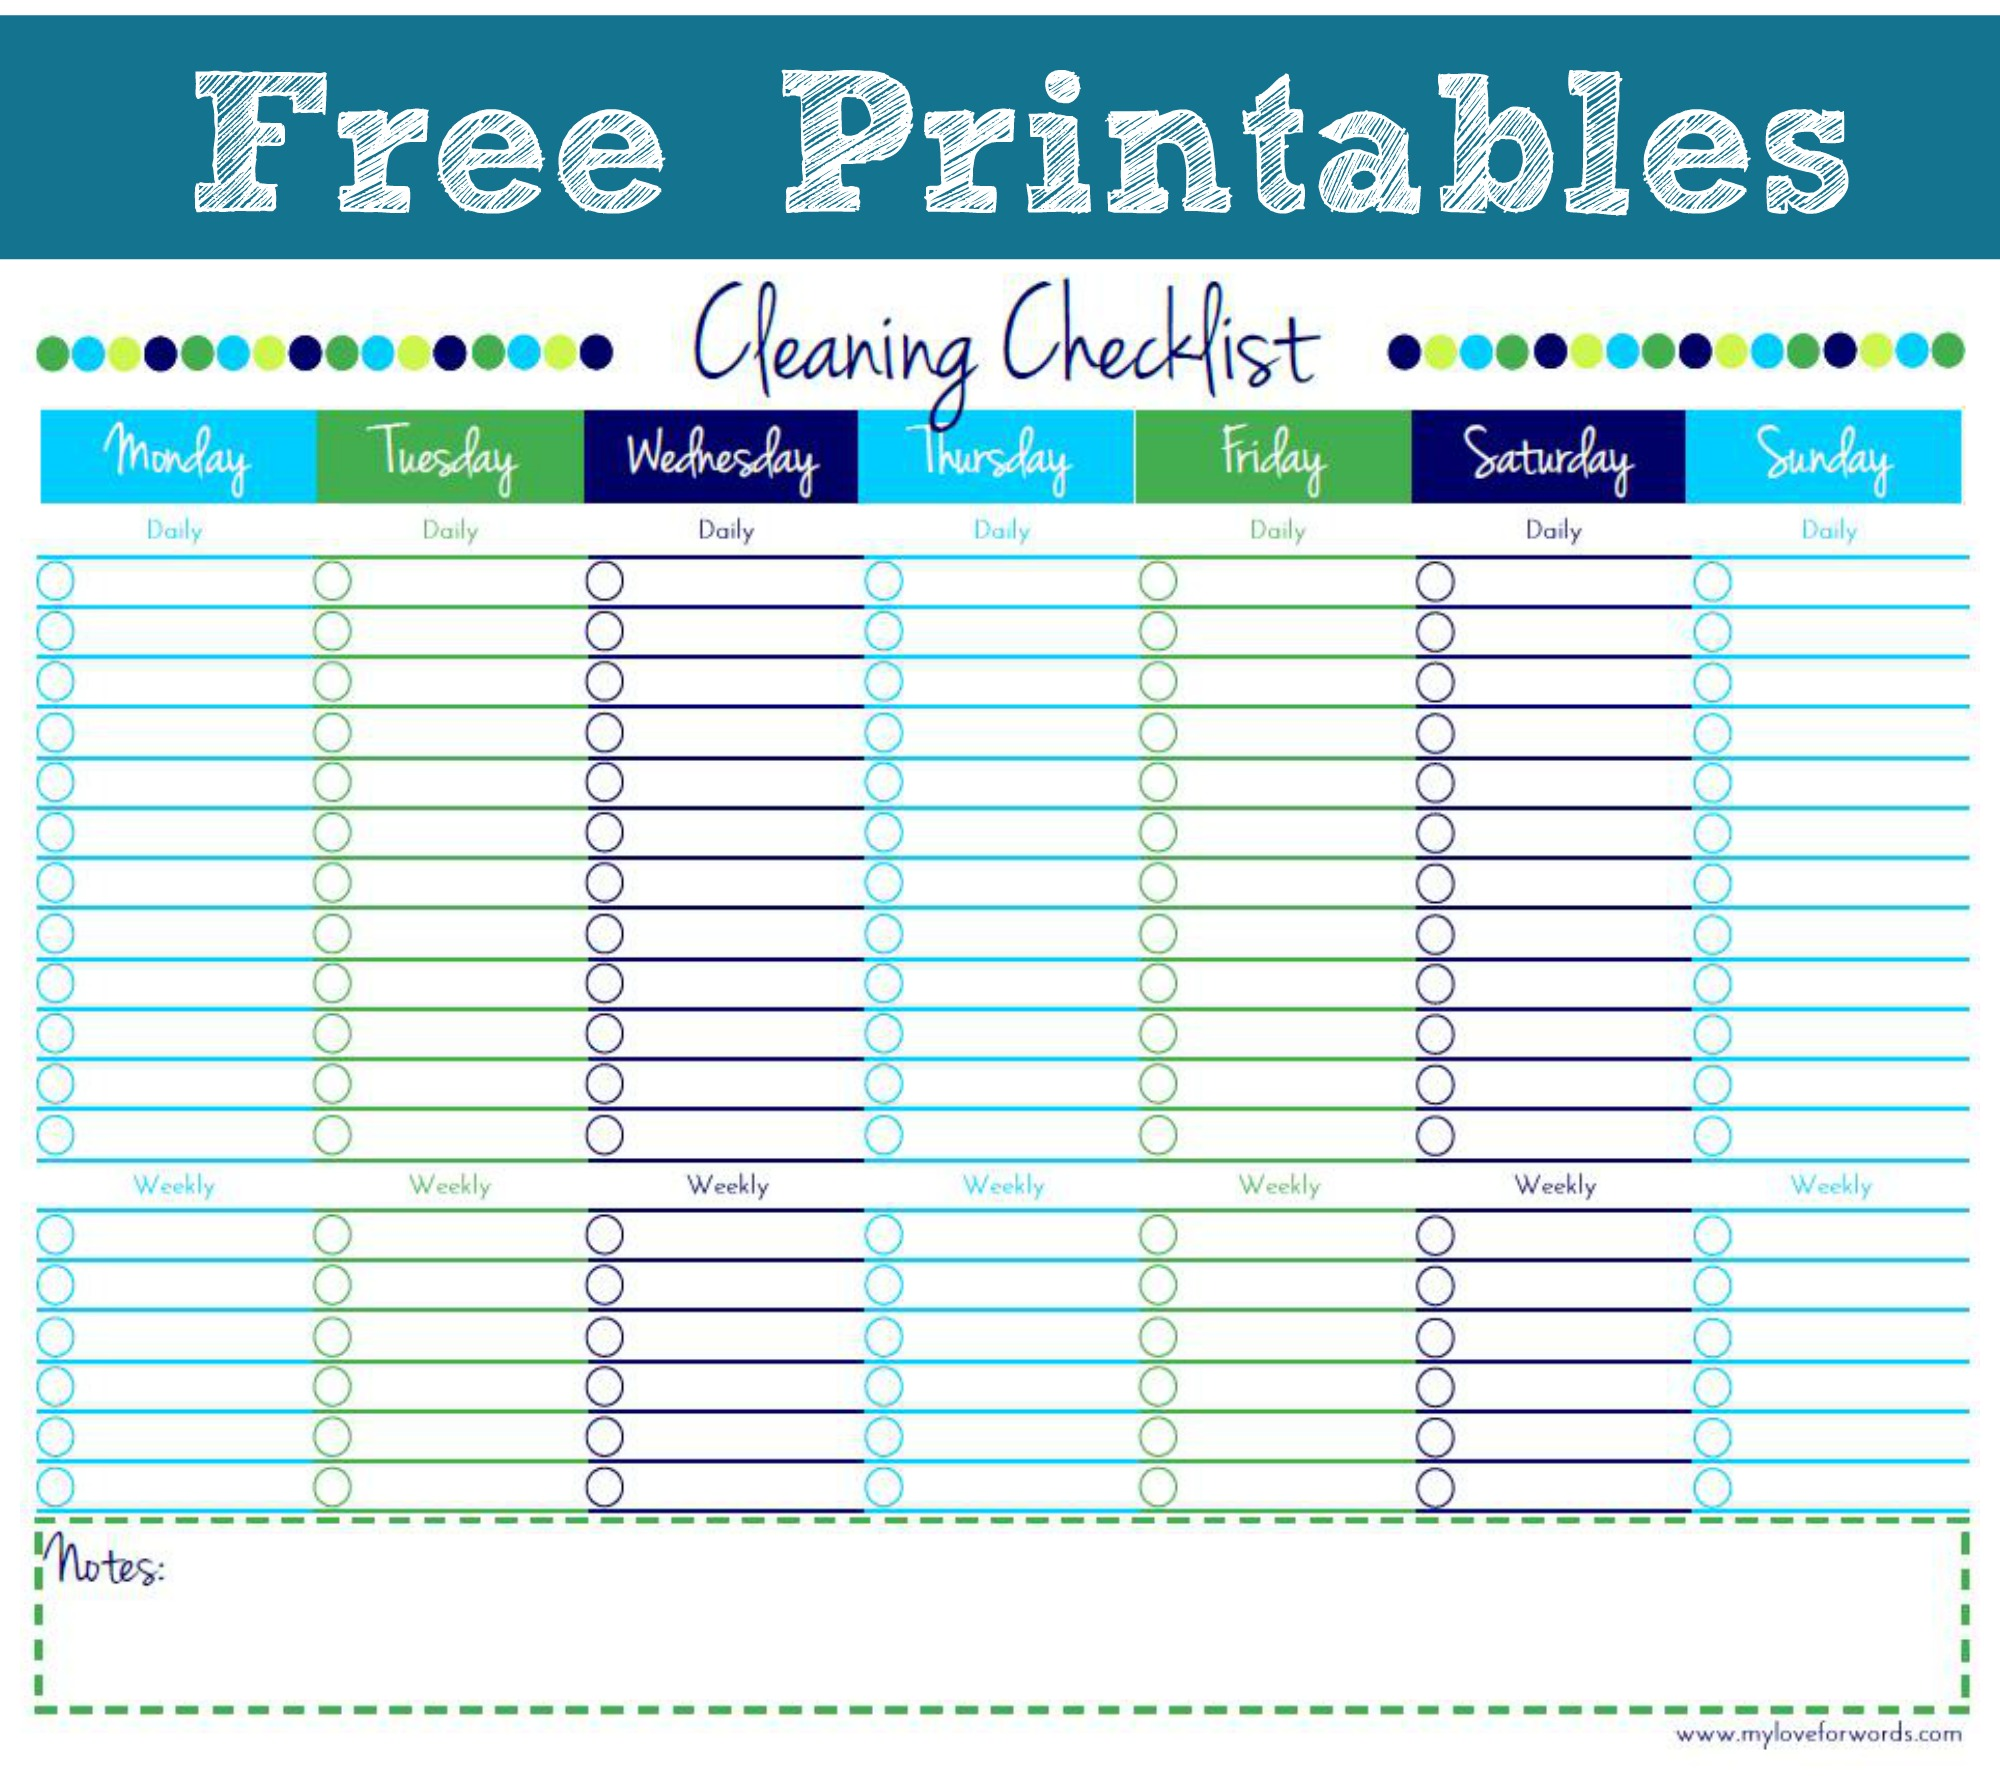 Cleaning Checklist Free Printable